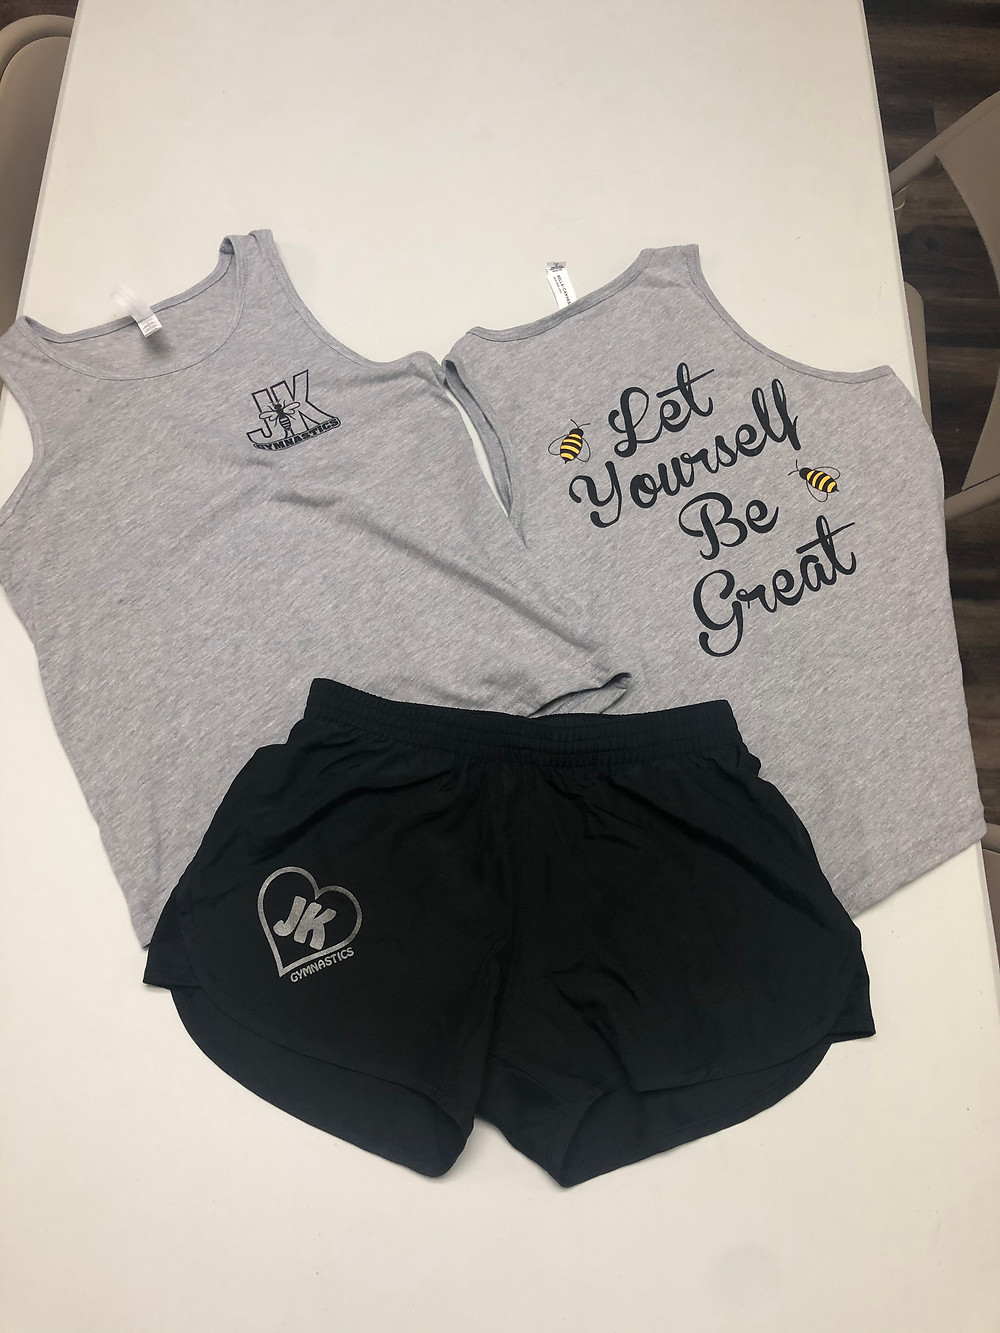 We have small medium and large sizes in youth! Come in and grab your set today!